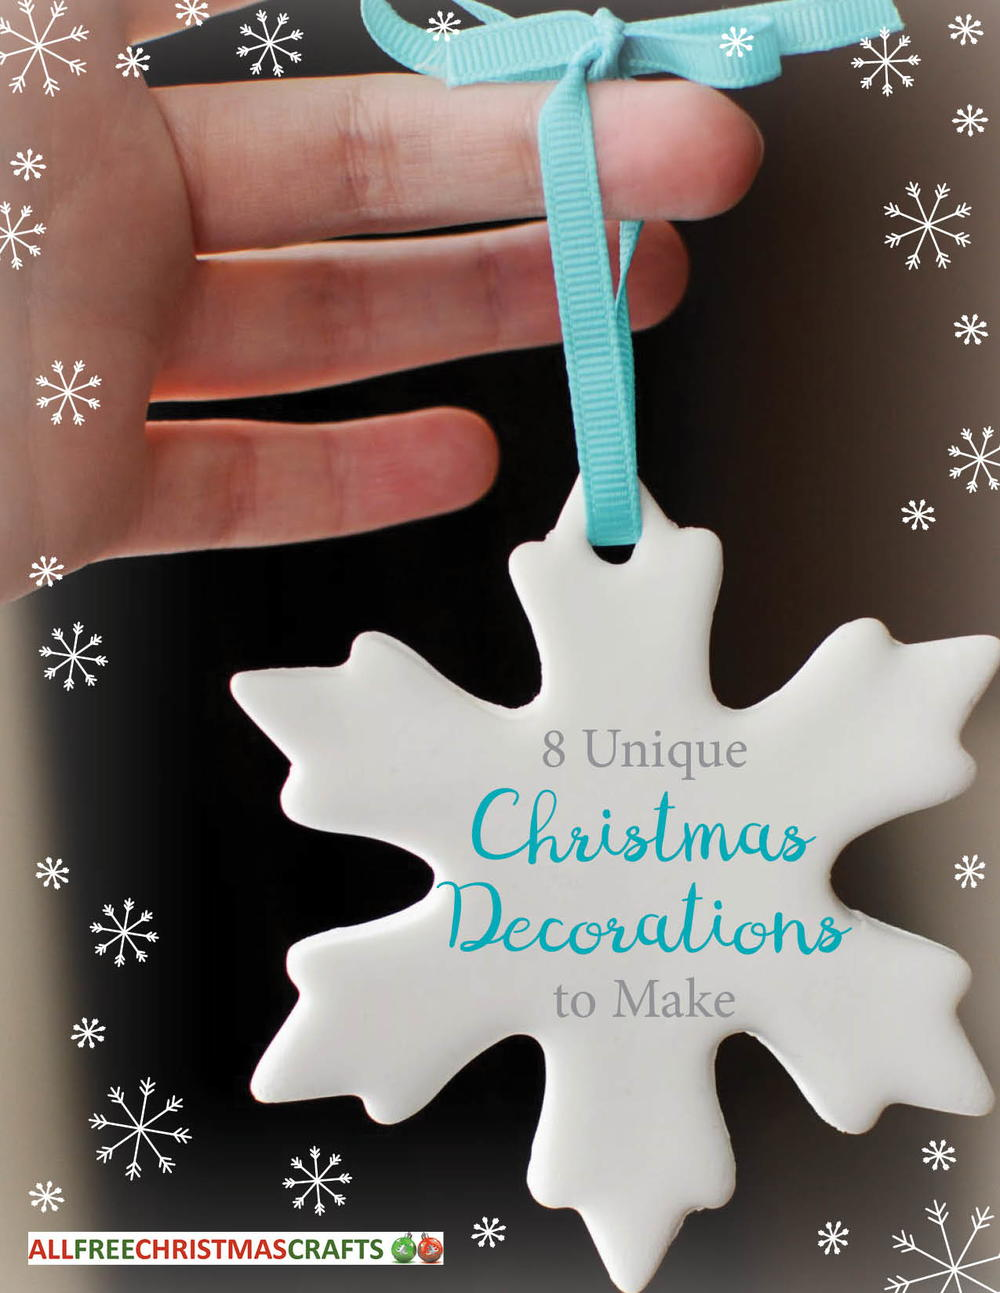 free christmas crafts ideas 8 unique decorations to make free ebook 4505